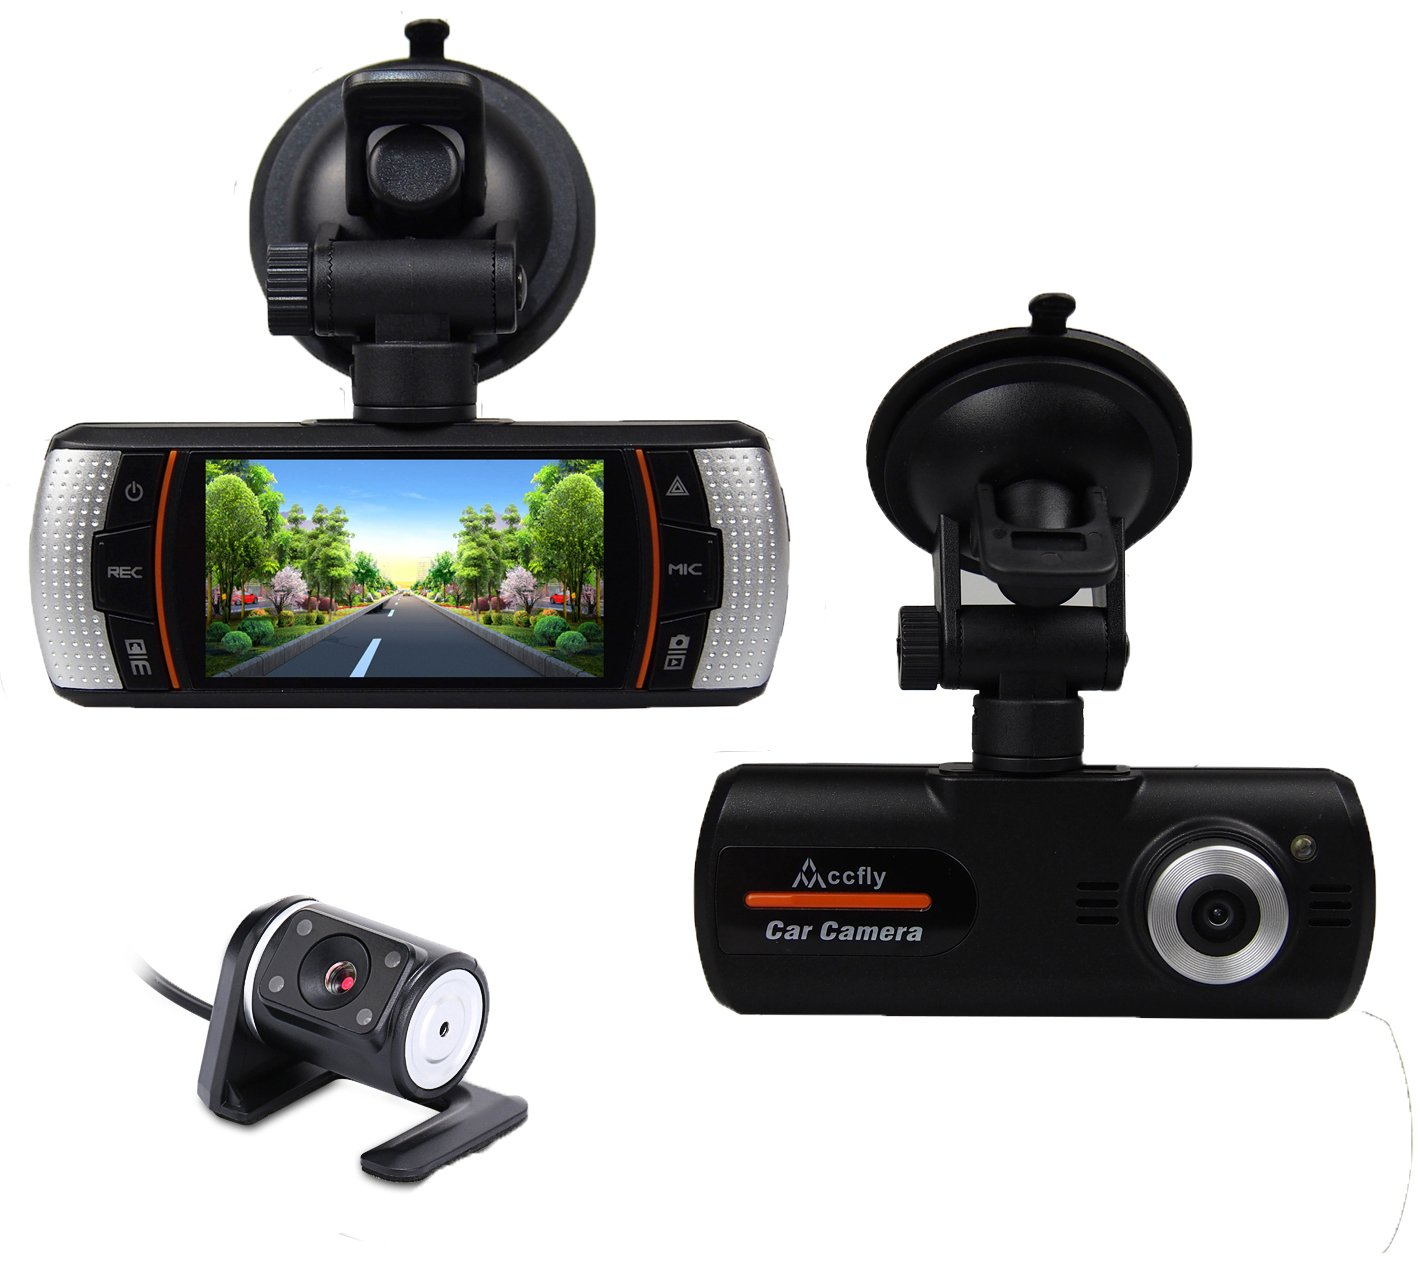 Accfly 2.7-inch Screen 1080P HD Video Recorder DVR Dual Lens Car Dash Camera QIN-C001CZ QIN-C077CZ